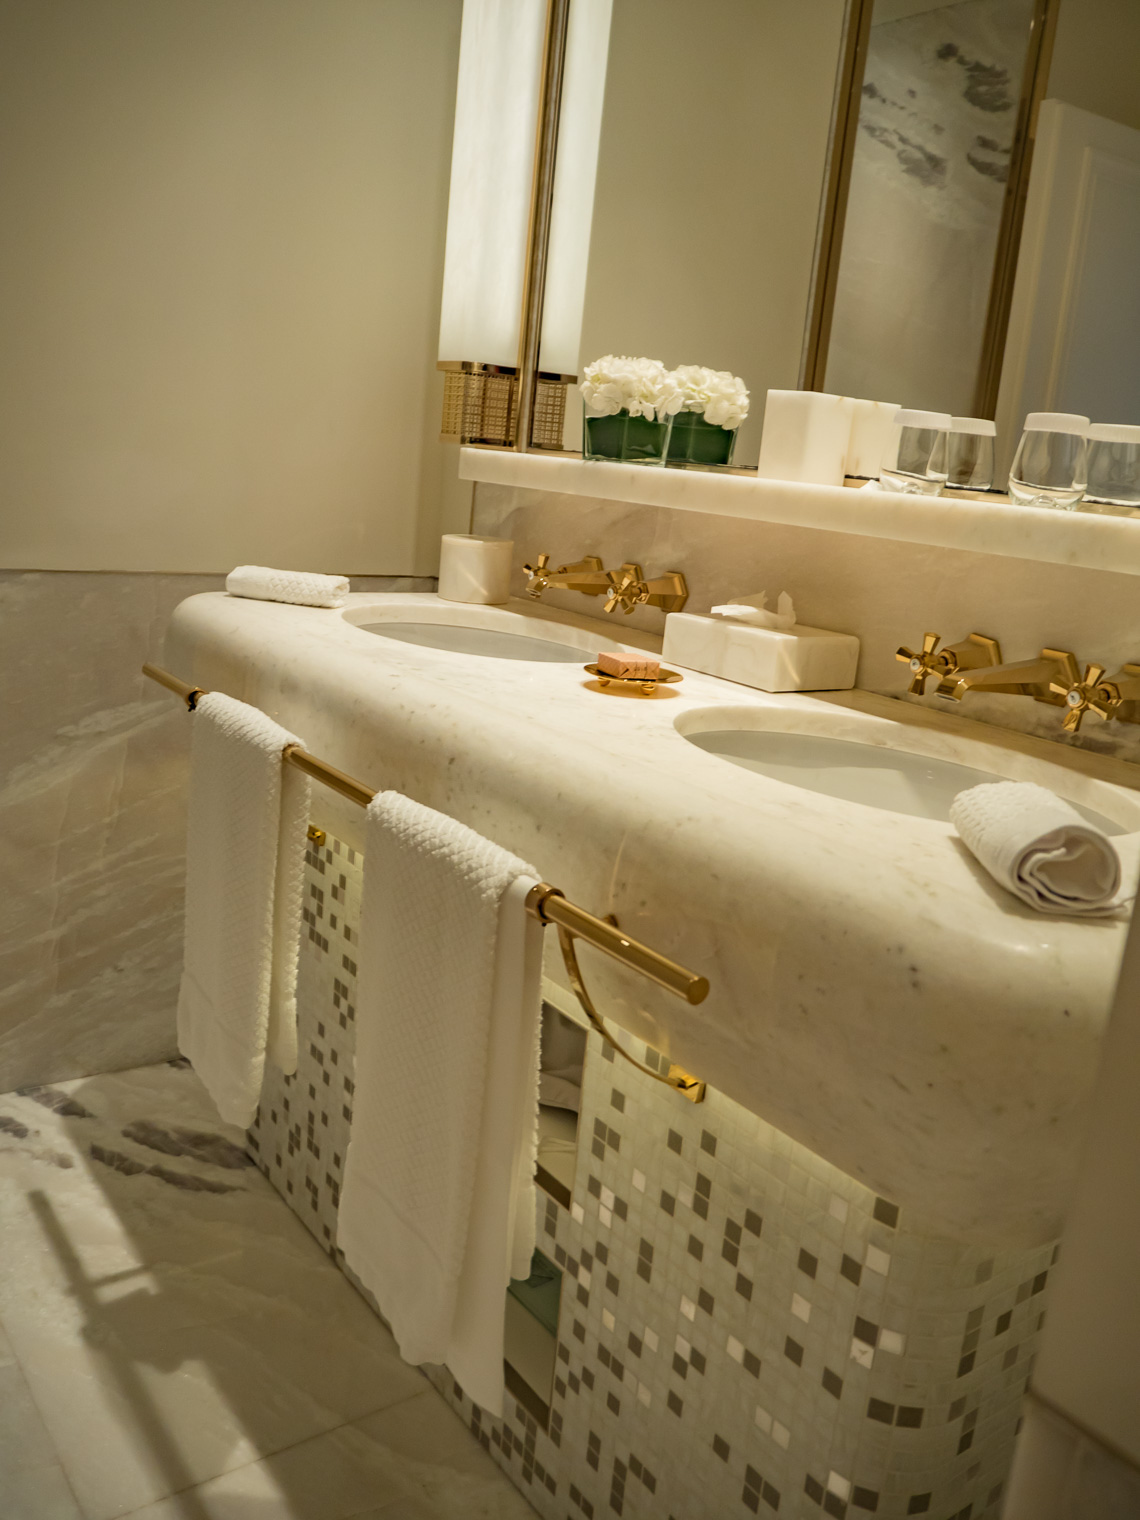 Luxury bathroom white marble with gold taps at hotel Eden Rome